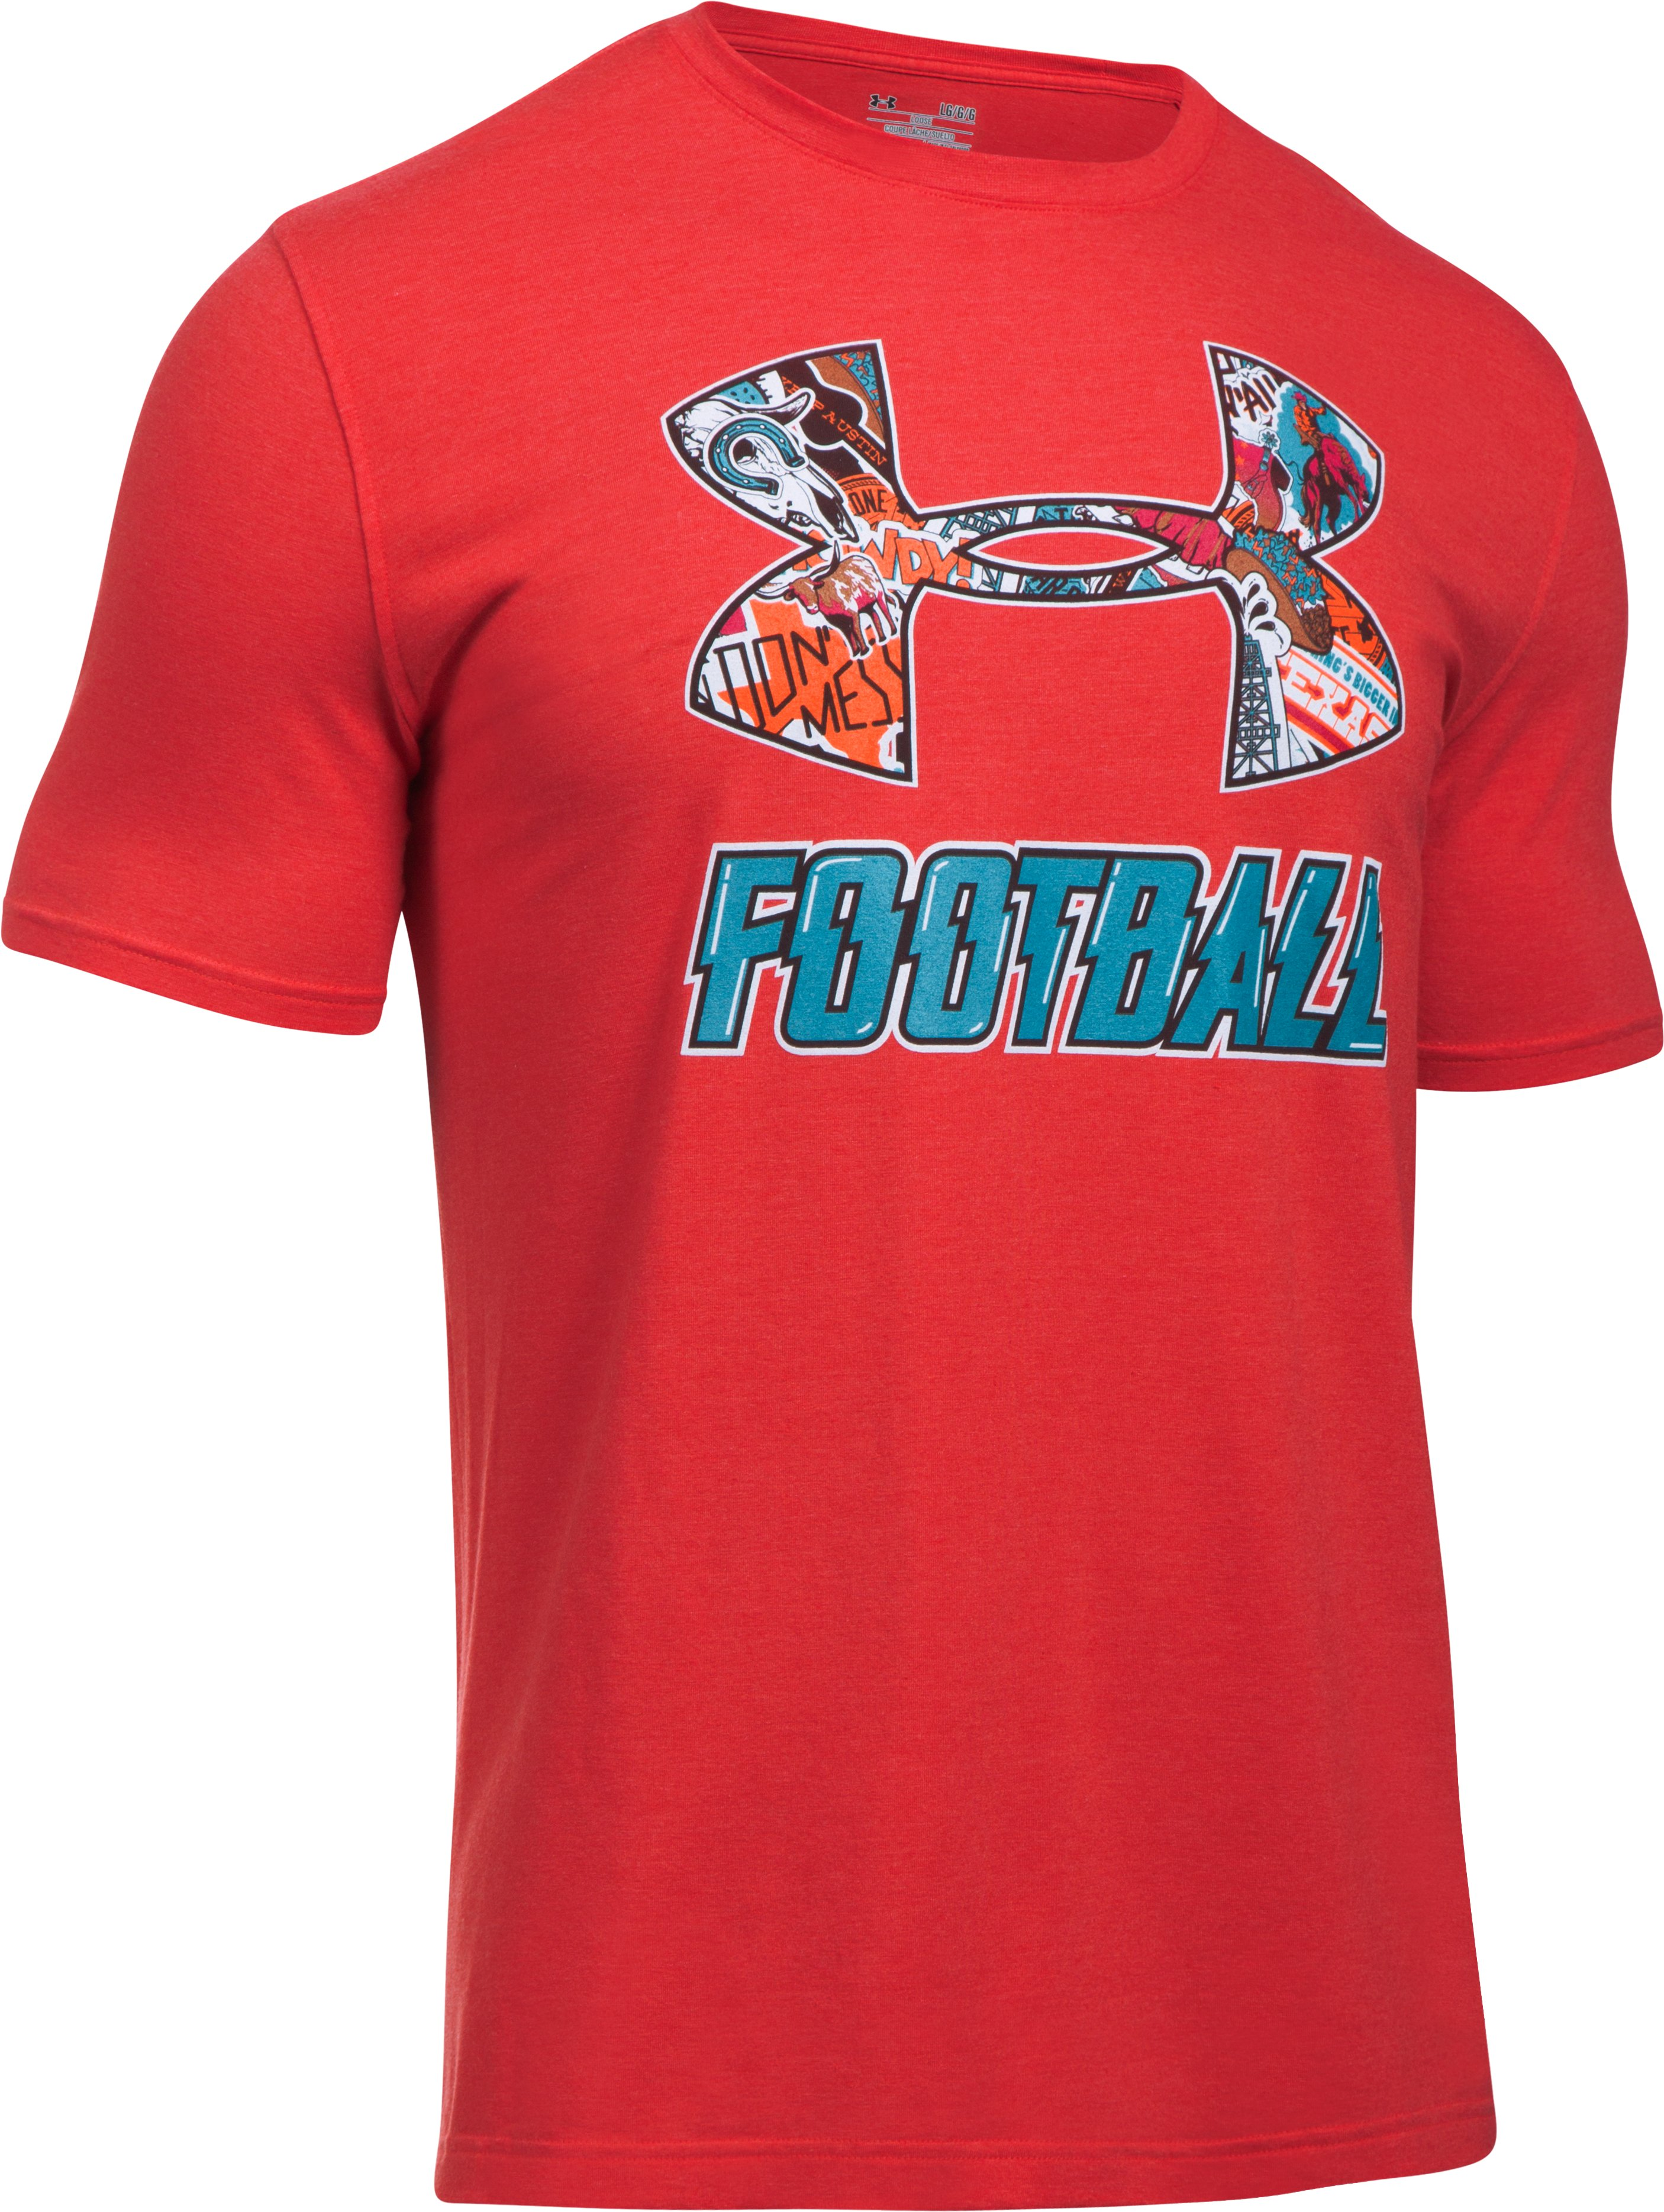 Men's UA Texas Football T-Shirt, Red,